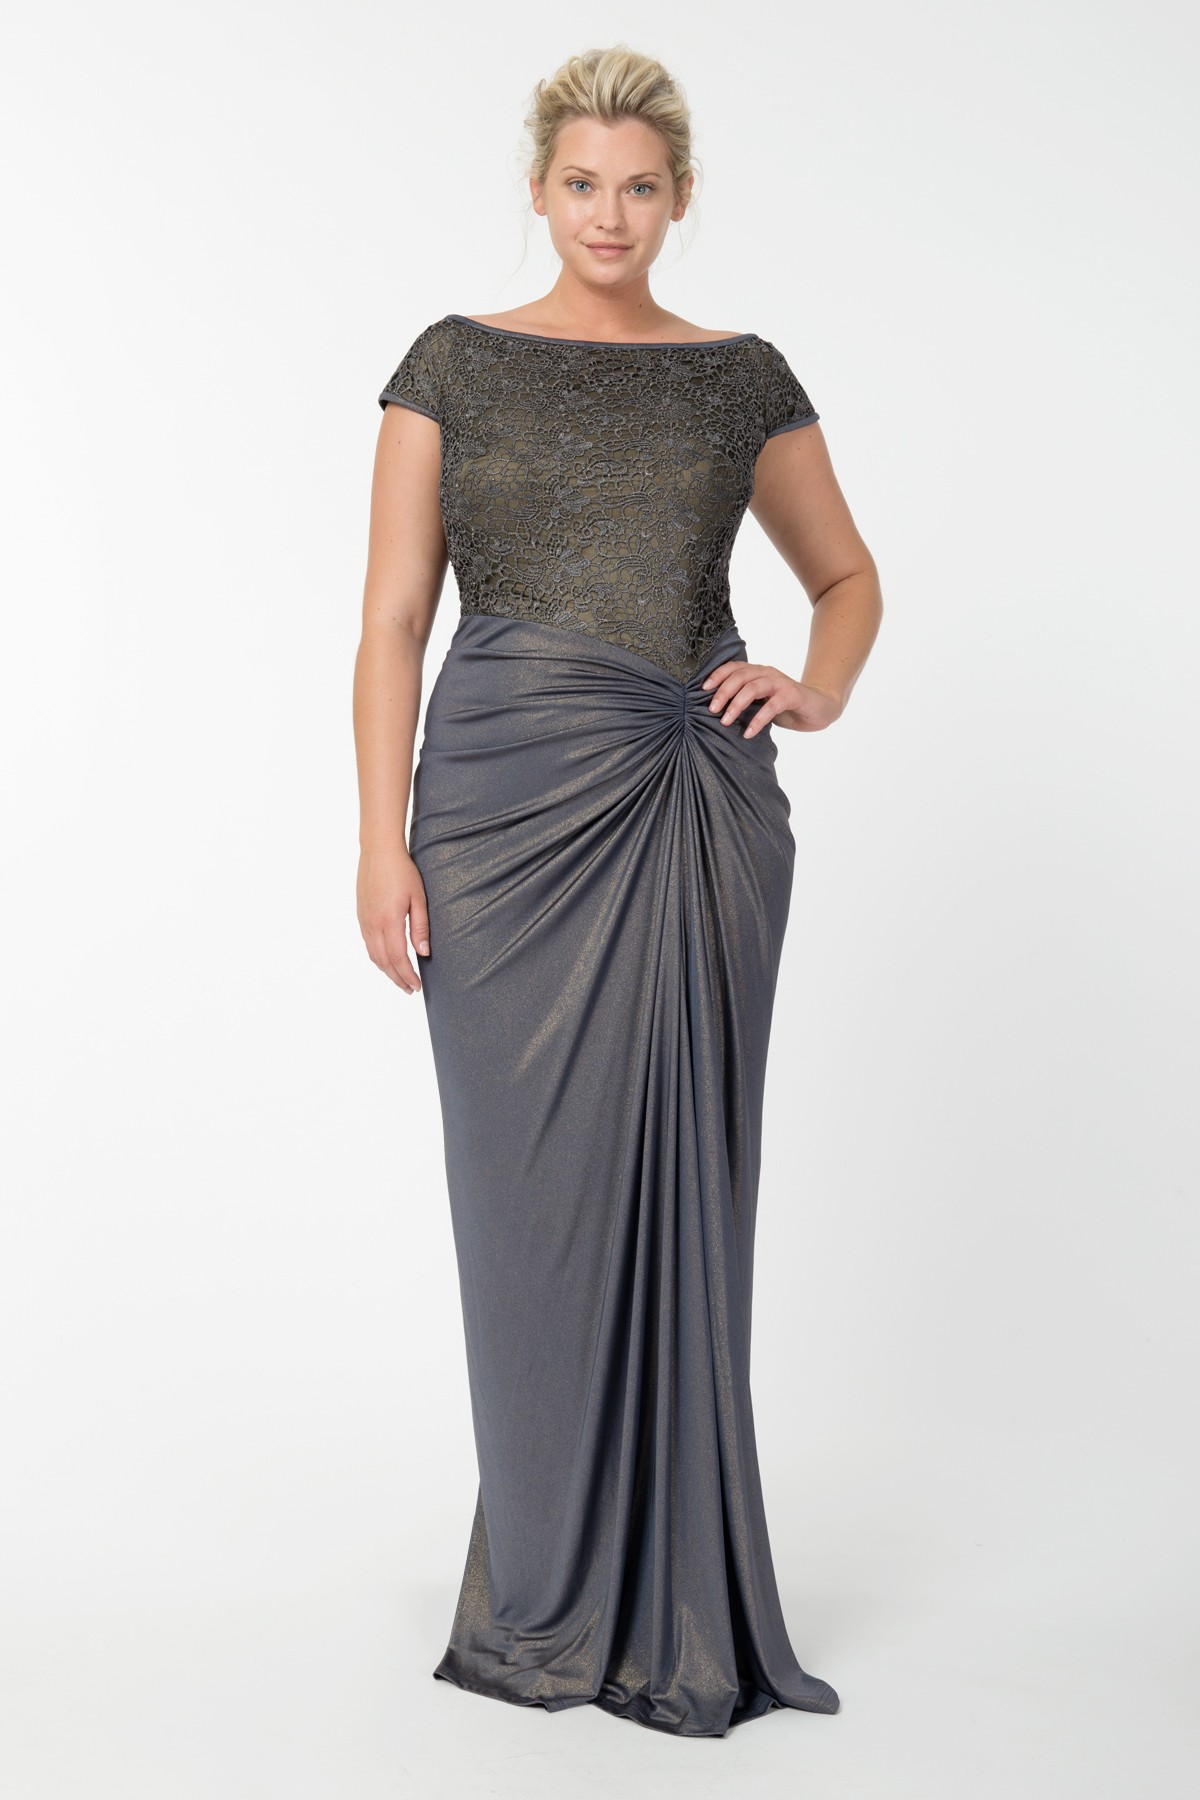 Plus Size Formal Gowns Black Style Jeans